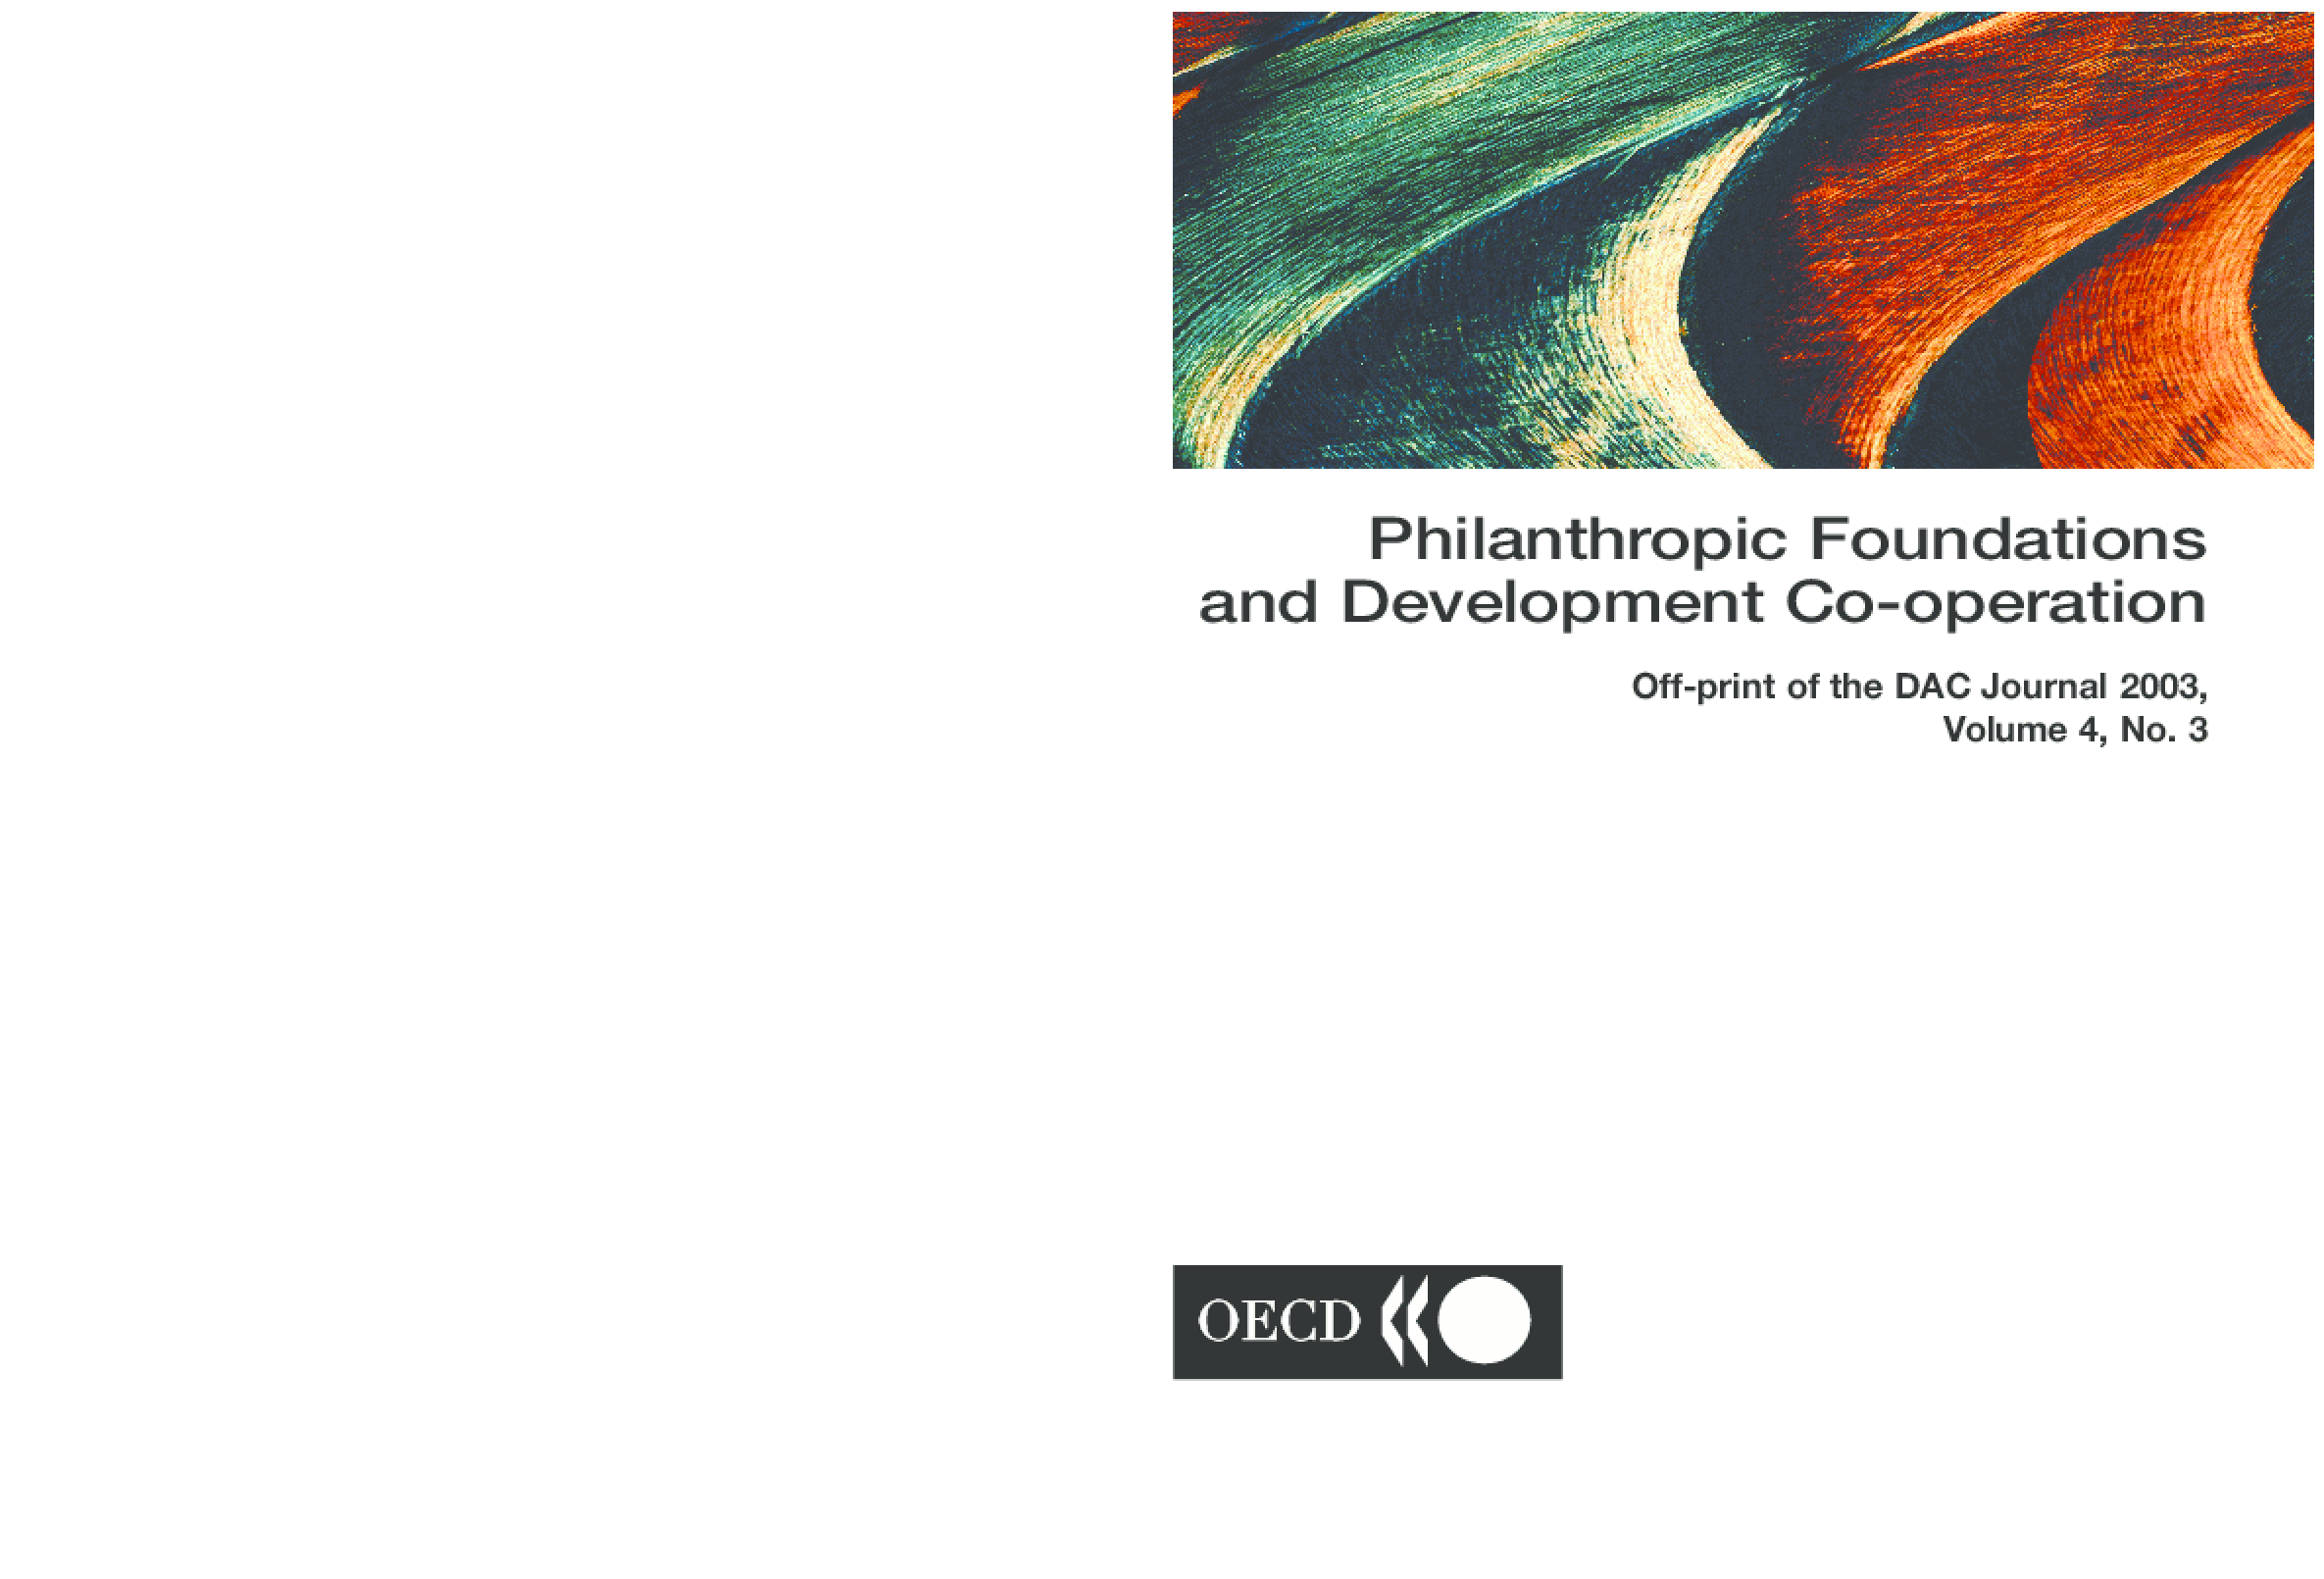 Philanthropic Foundations and Development Co-operation: Off-print of the DAC Journal 2003, Volume 4, No. 3